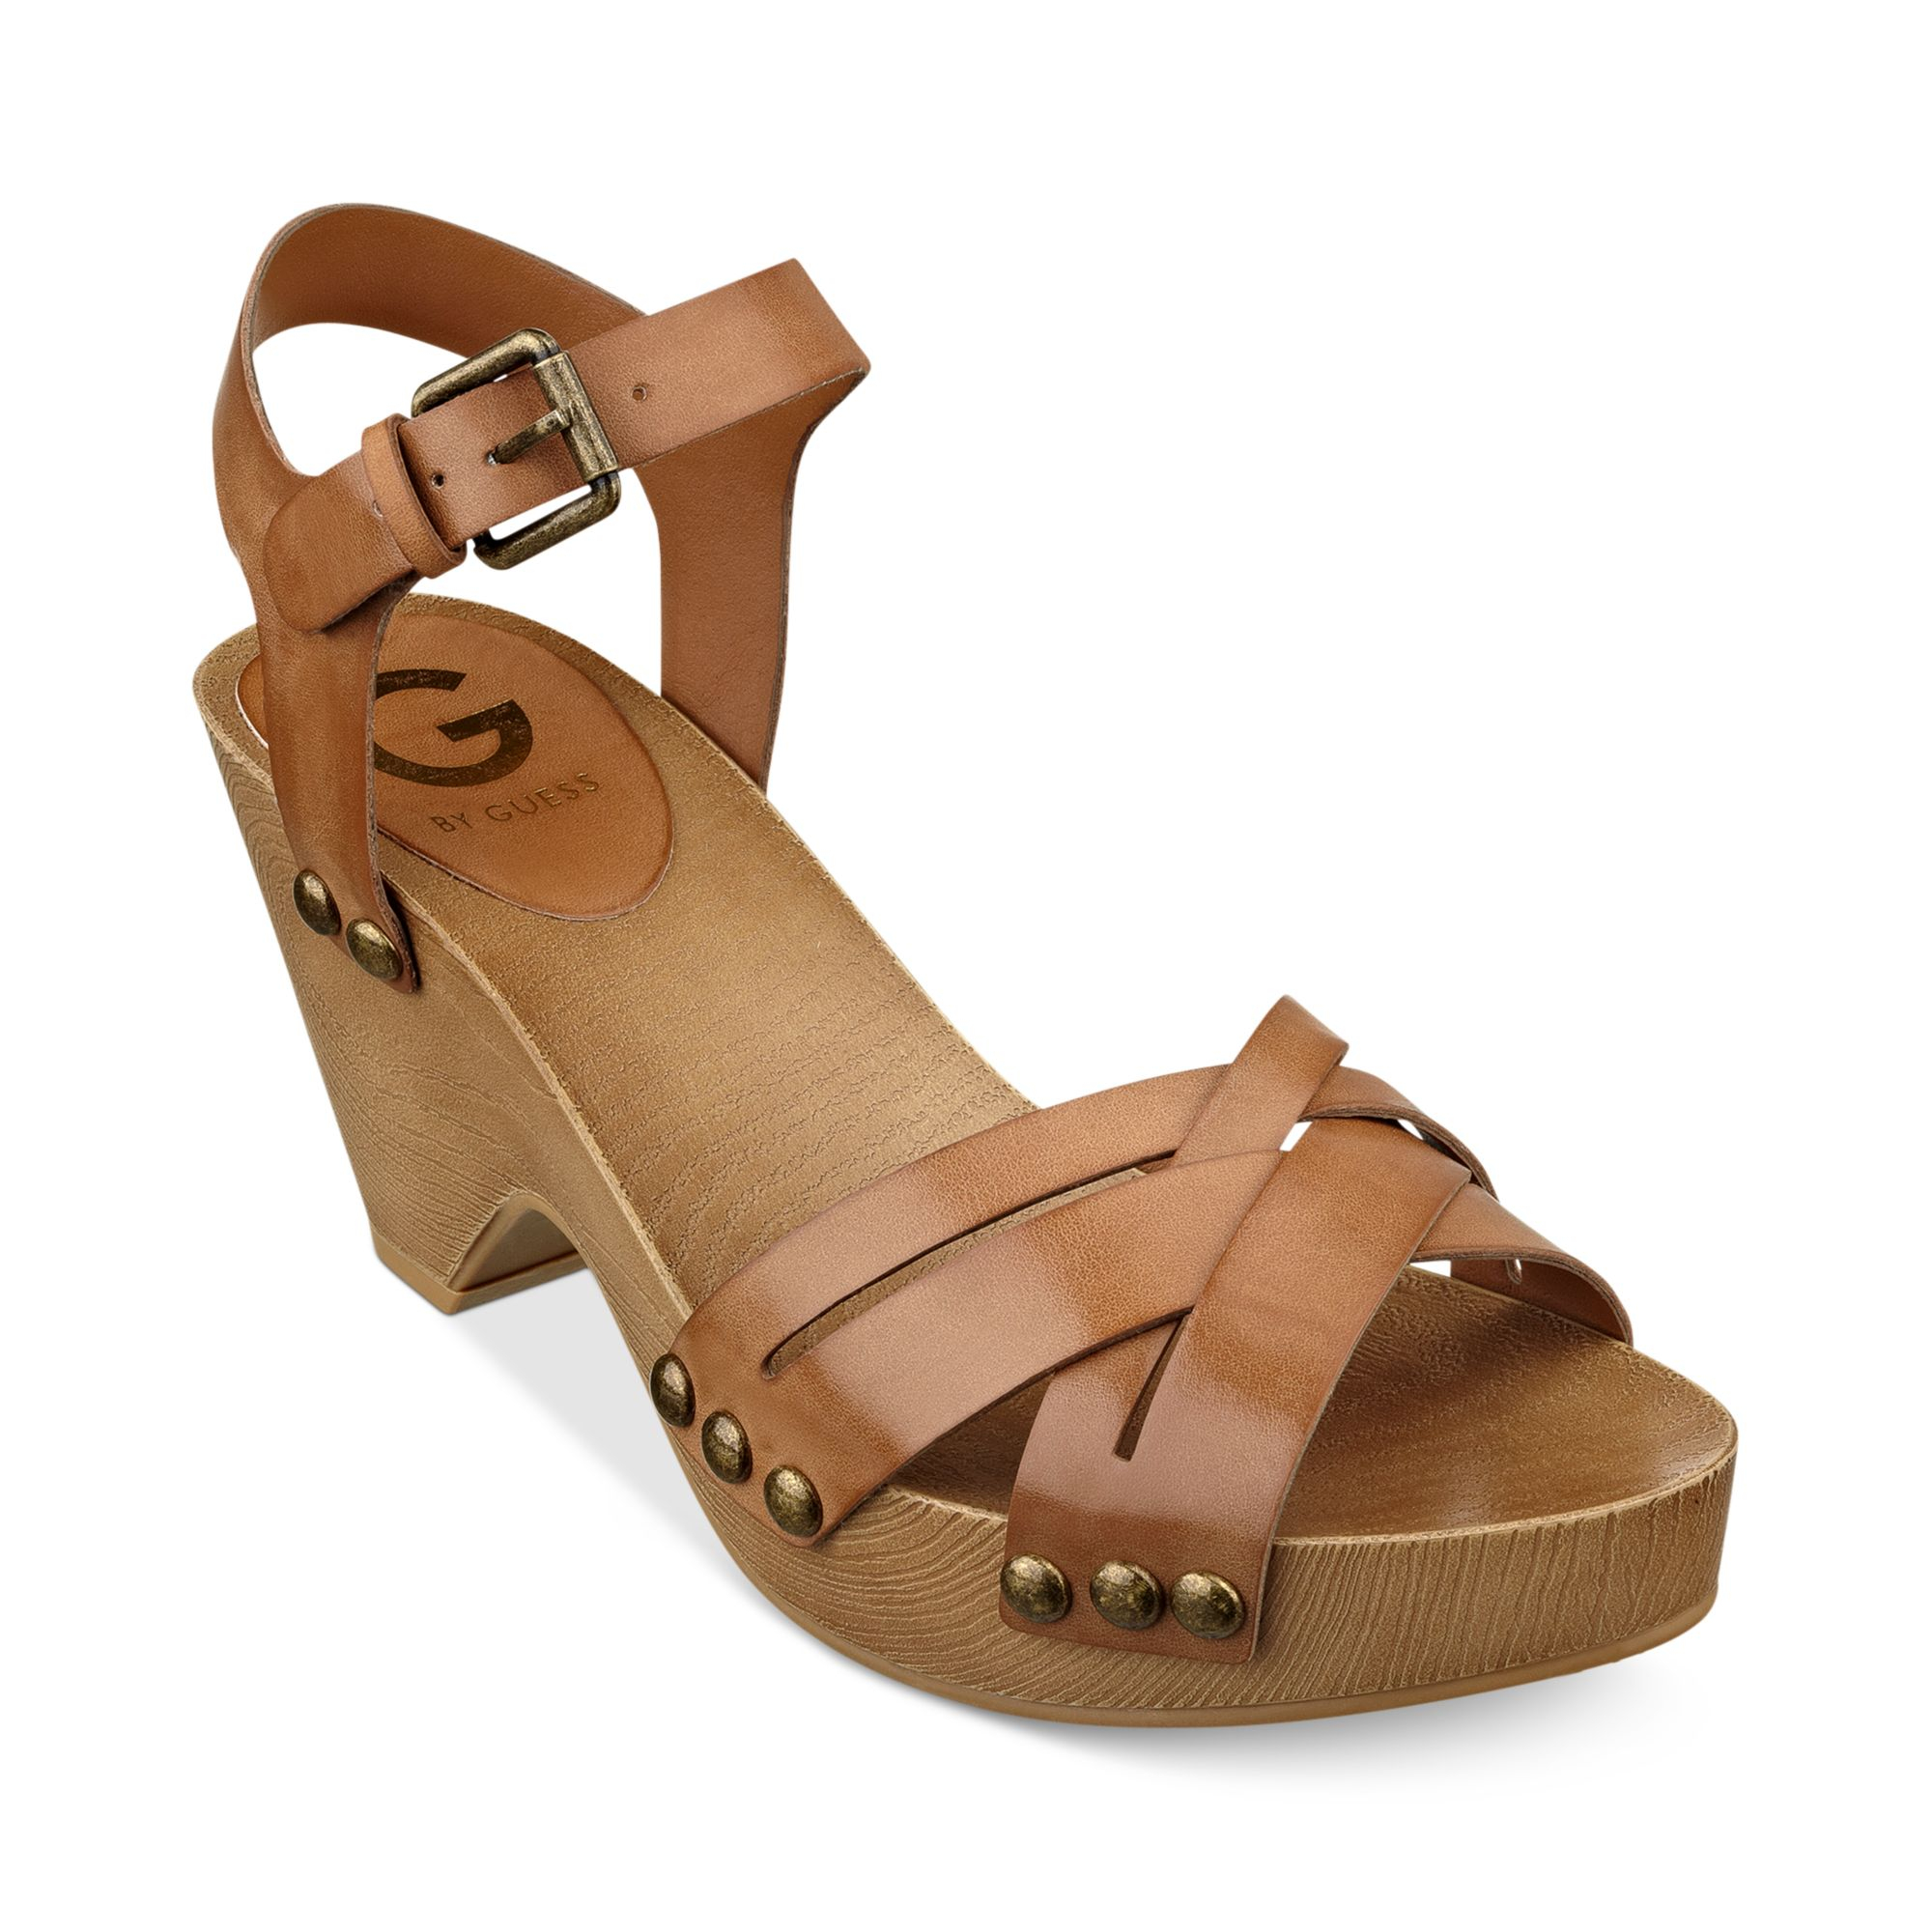 d68f62e422a45 G by Guess Womens Jackal Platform Clog Sandals in Brown - Lyst